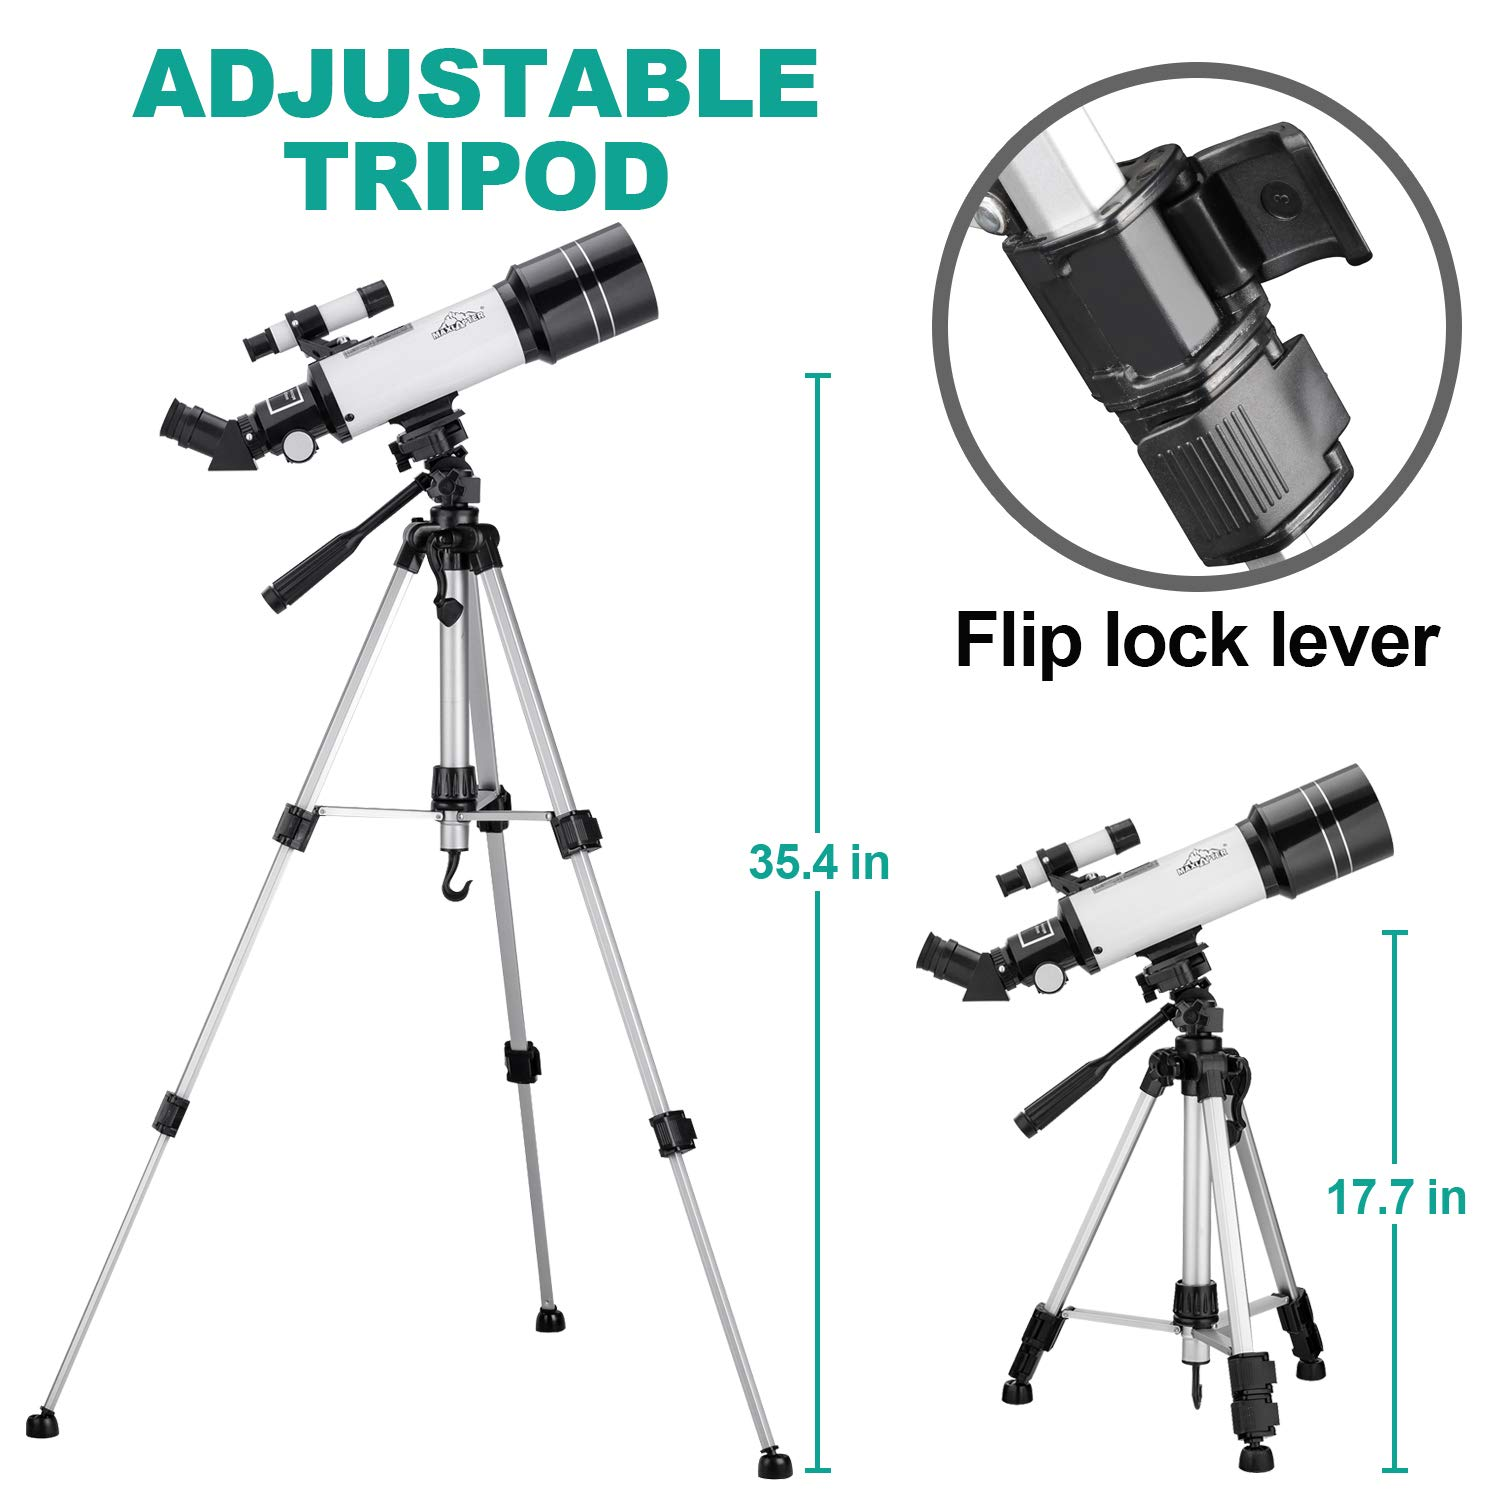 MAXLAPTER Telescope for Kids and Beginners, 70mm Travel Refractor Telescope for Astronomy with Adjustable Tripod, Smartphone Adapter, Camera Shutter Wire Control, Backpack by MAXLAPTER (Image #9)